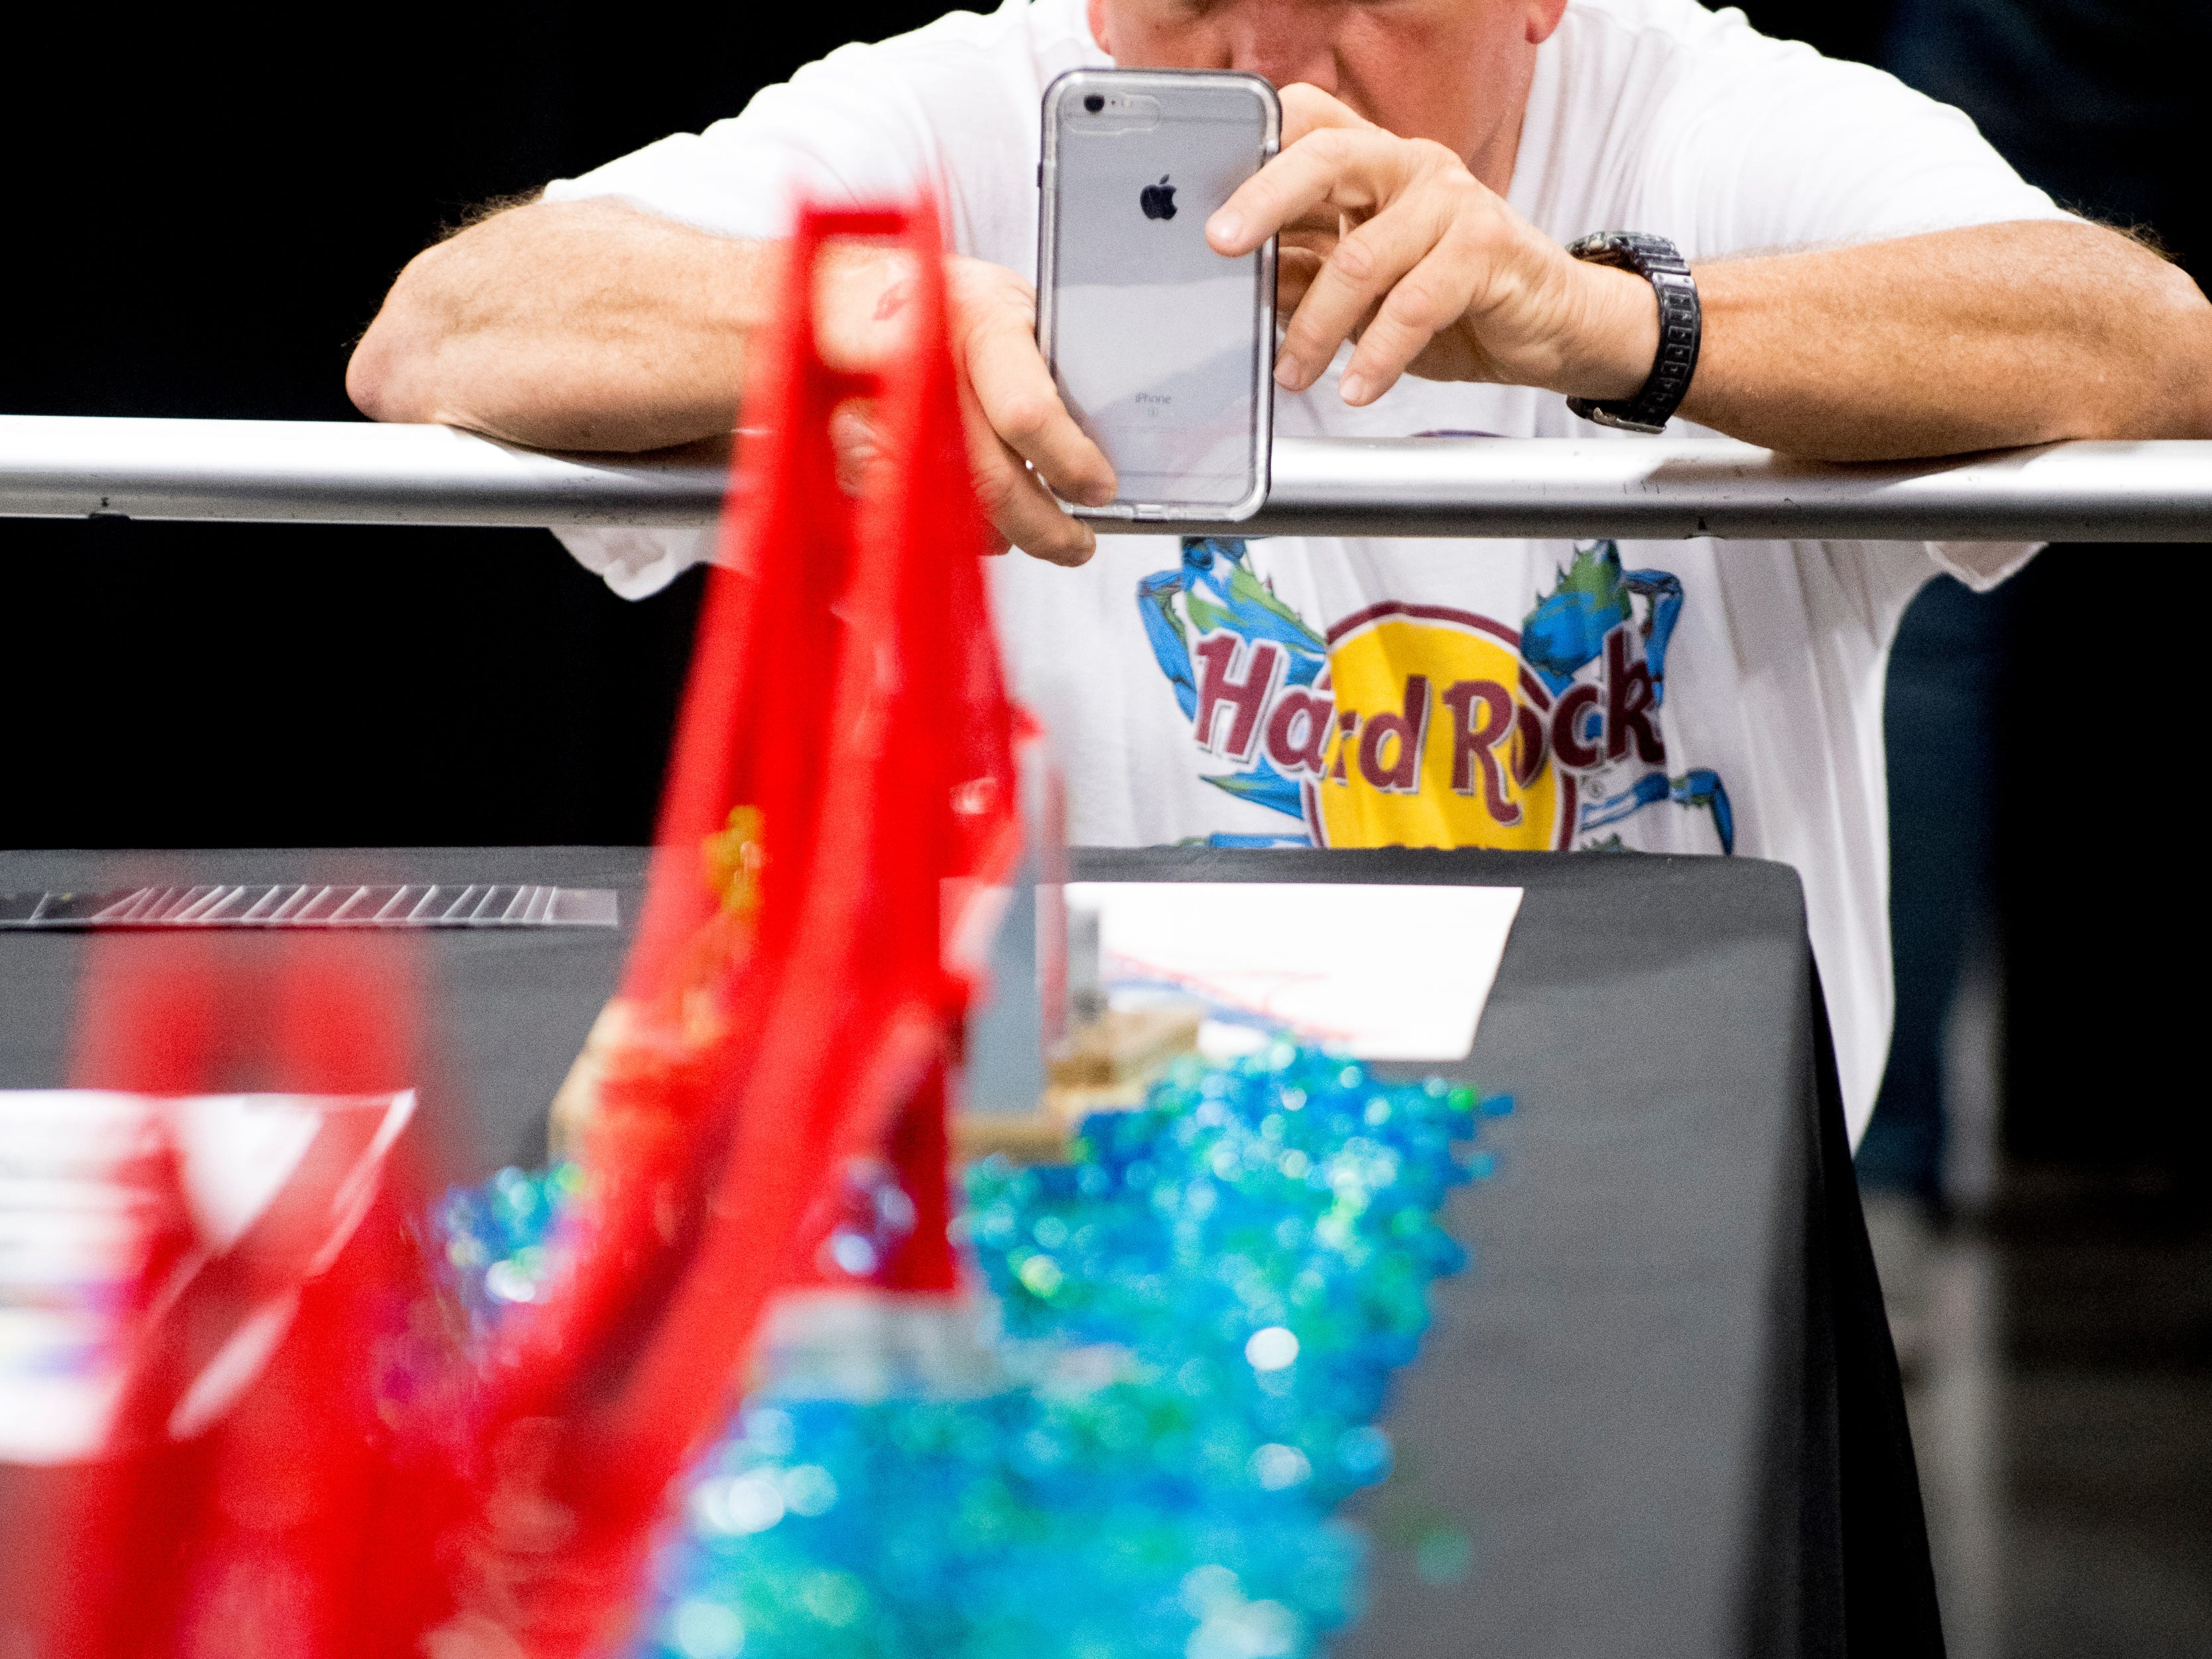 Paul Hardtke, of Asheville, North Carolina, takes a photo of Golden Gate Bridge while visit with his son and grandson at the BrickUniverse Knoxville LEGO Fan Expo in the Knoxville Convention Center in Knoxville, Tennessee on Saturday, August 25, 2018. Life-sized LEGO displays, over 40 world landmarks build to-scale from LEGO as well as castles, trains, and cities and other creations were on display.